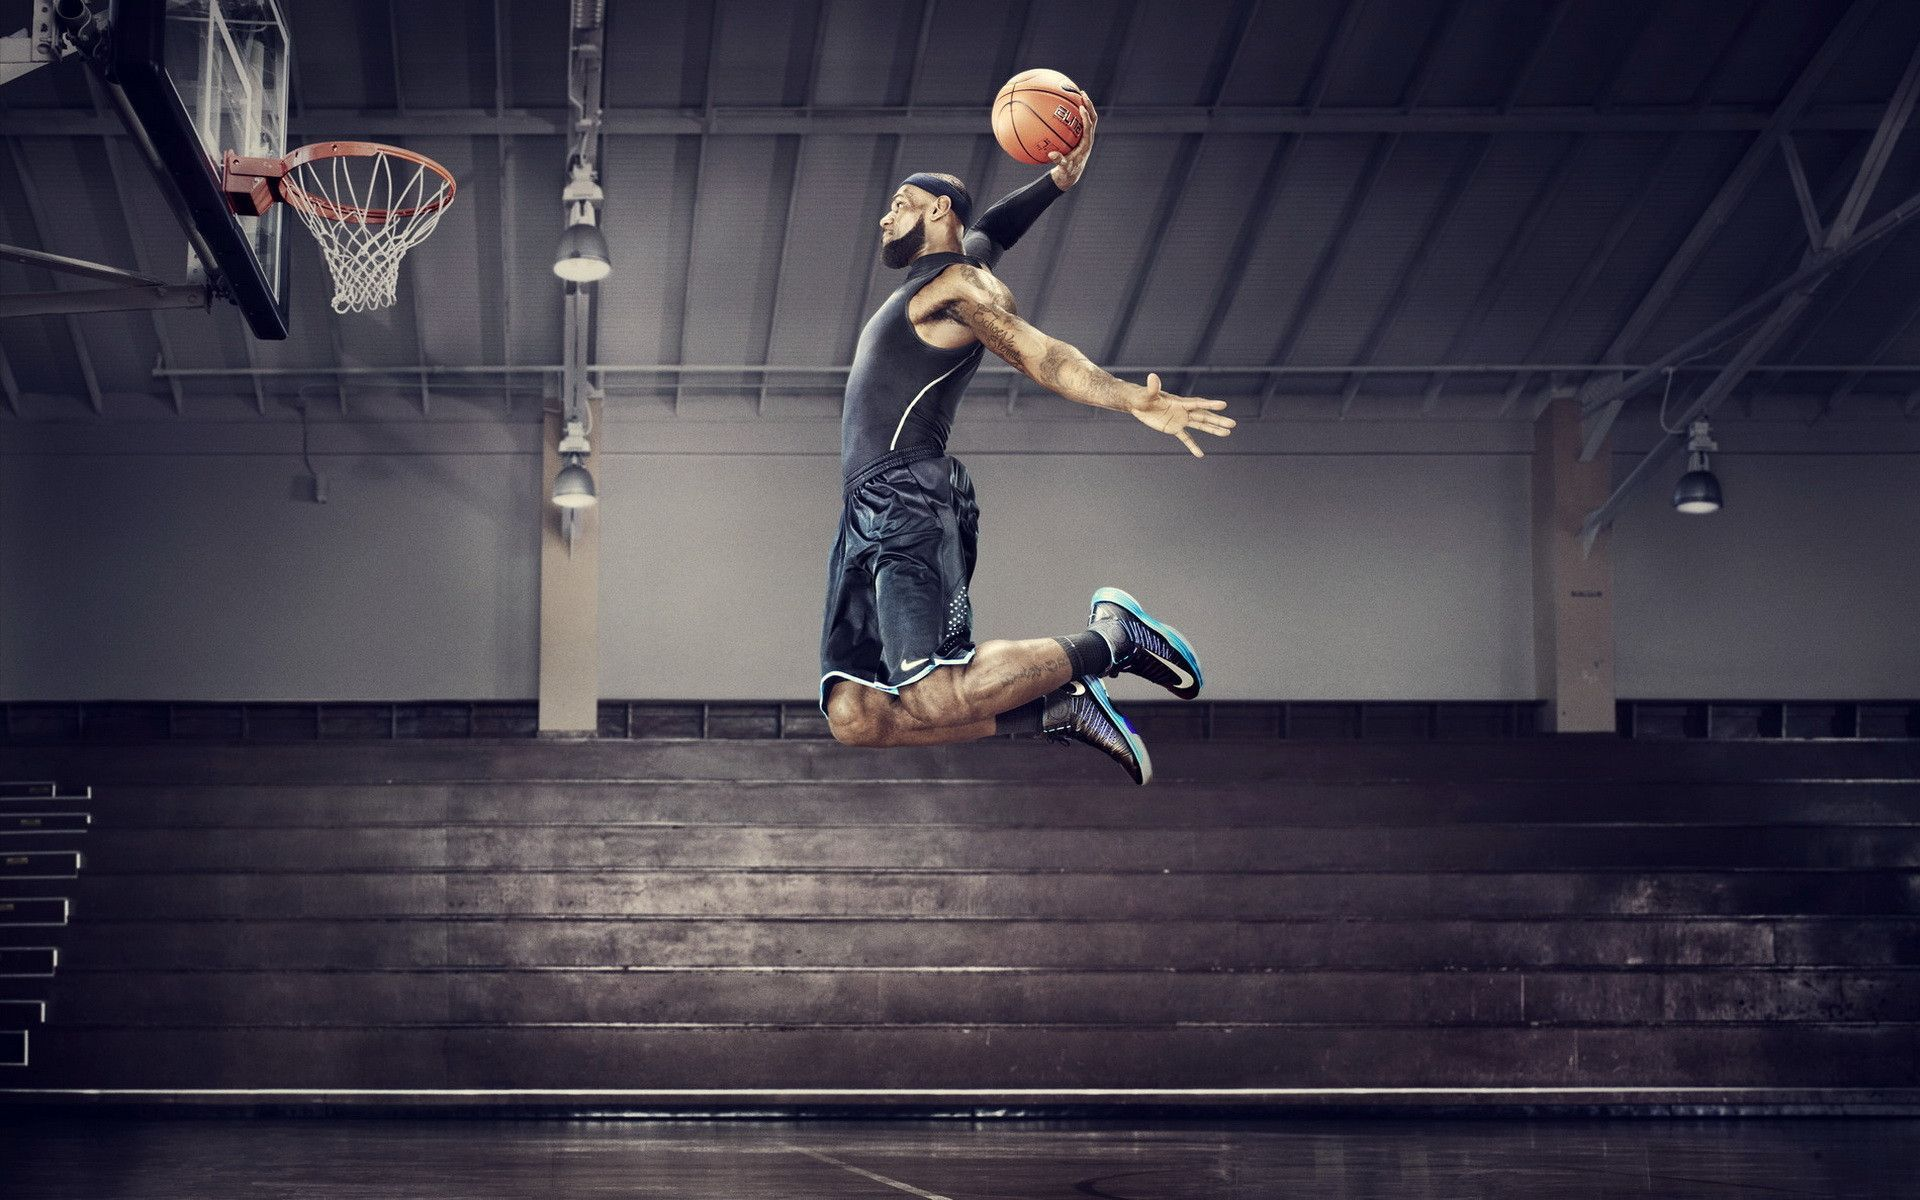 70 Basketball Wallpaper Pictures In High Def For Download